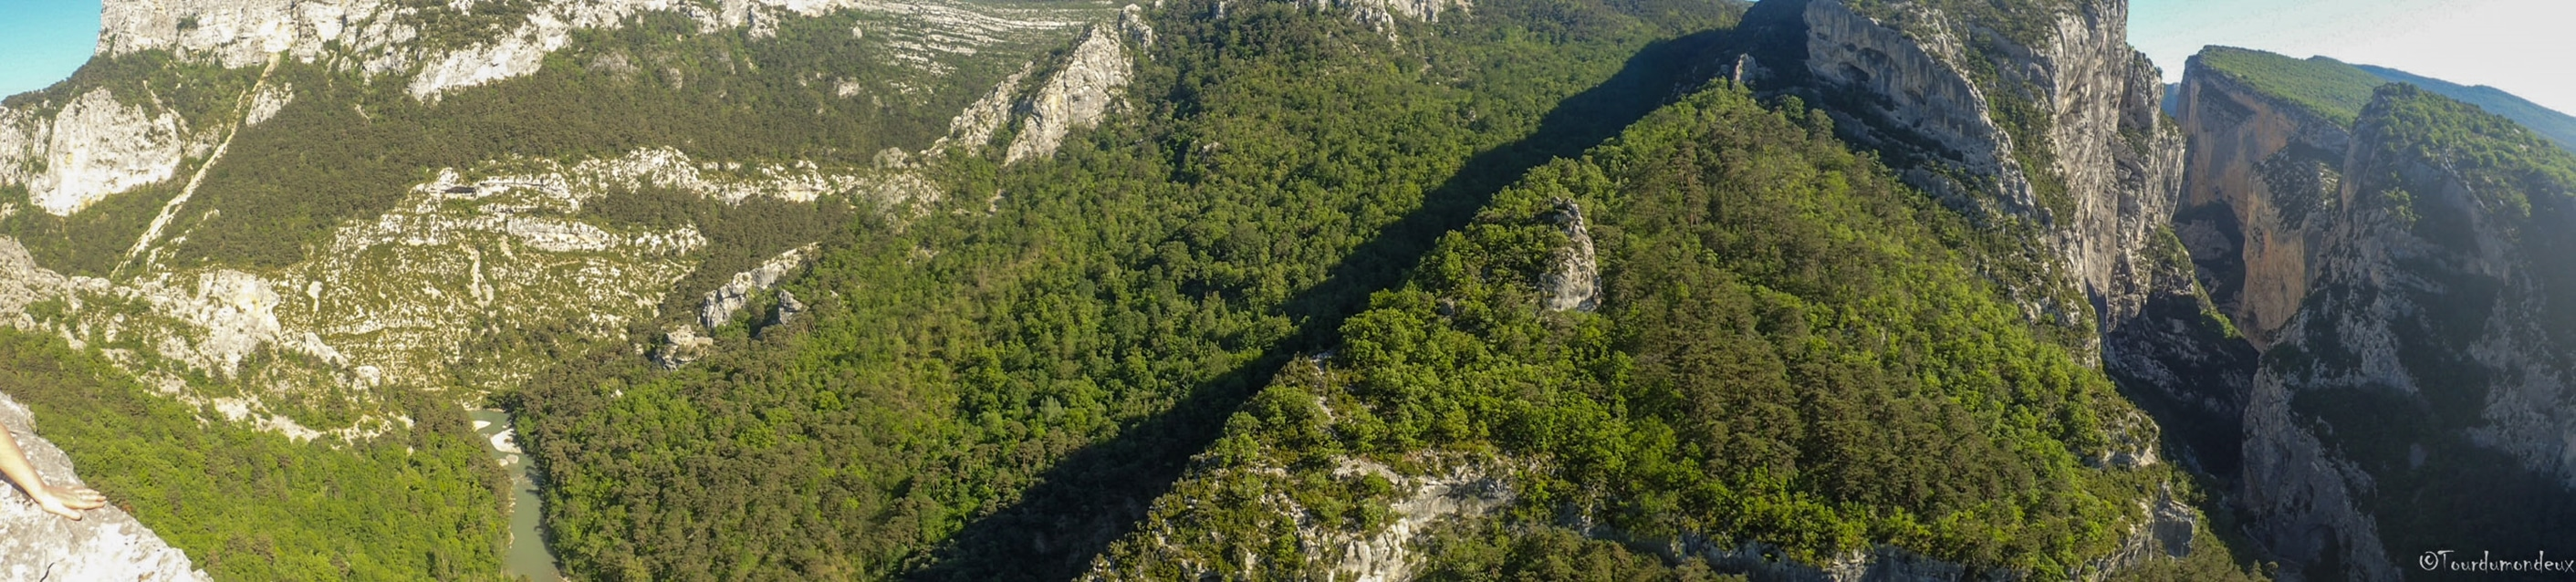 gorges-verdon-panorama-point-sublime